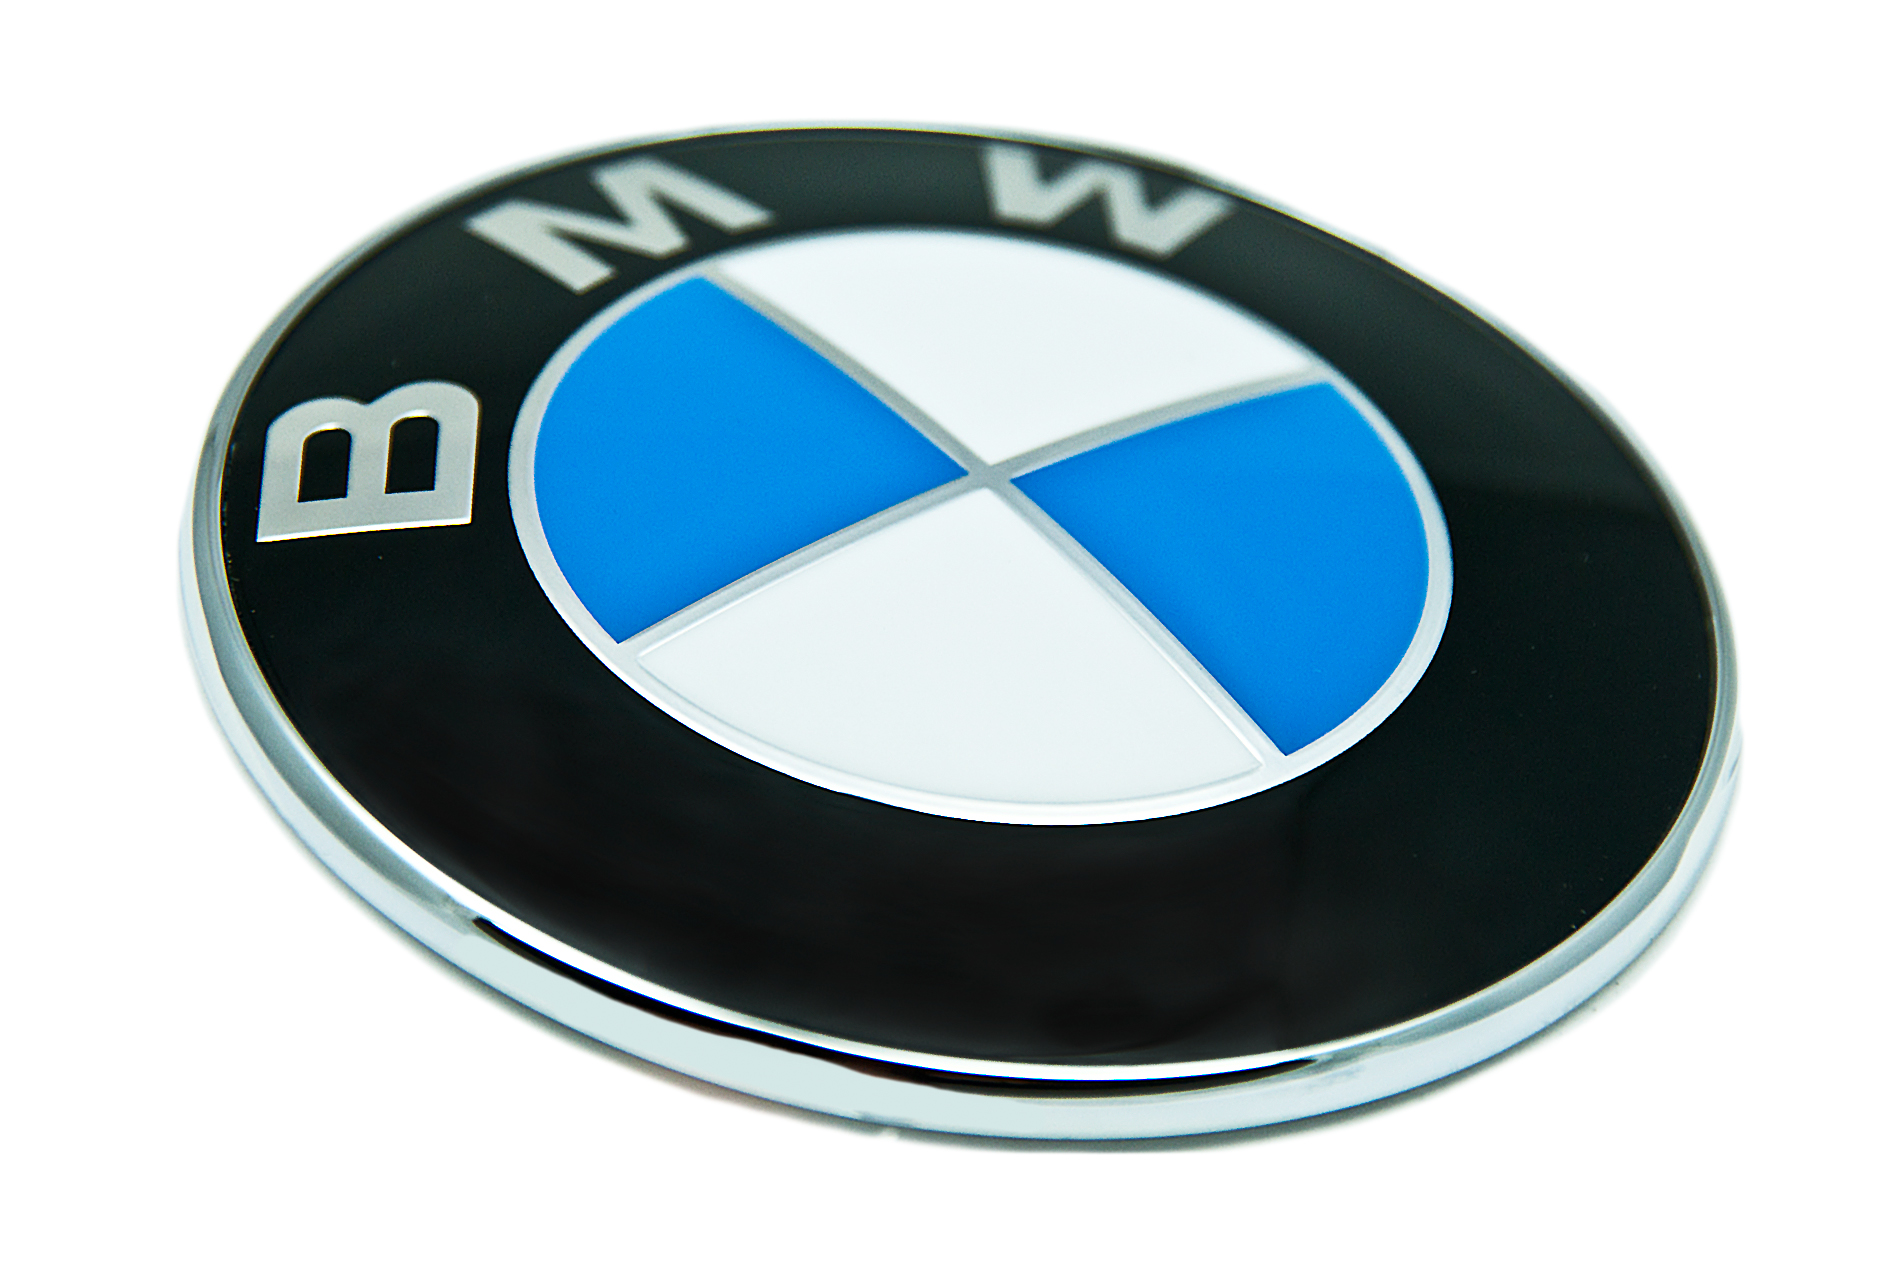 Bmw Z3 Bonnet Badge Bmw Z3 Bonnet Badge Bmw Zm Series Alpina B4 Bi Turbo To Bmw 82mm Carbon